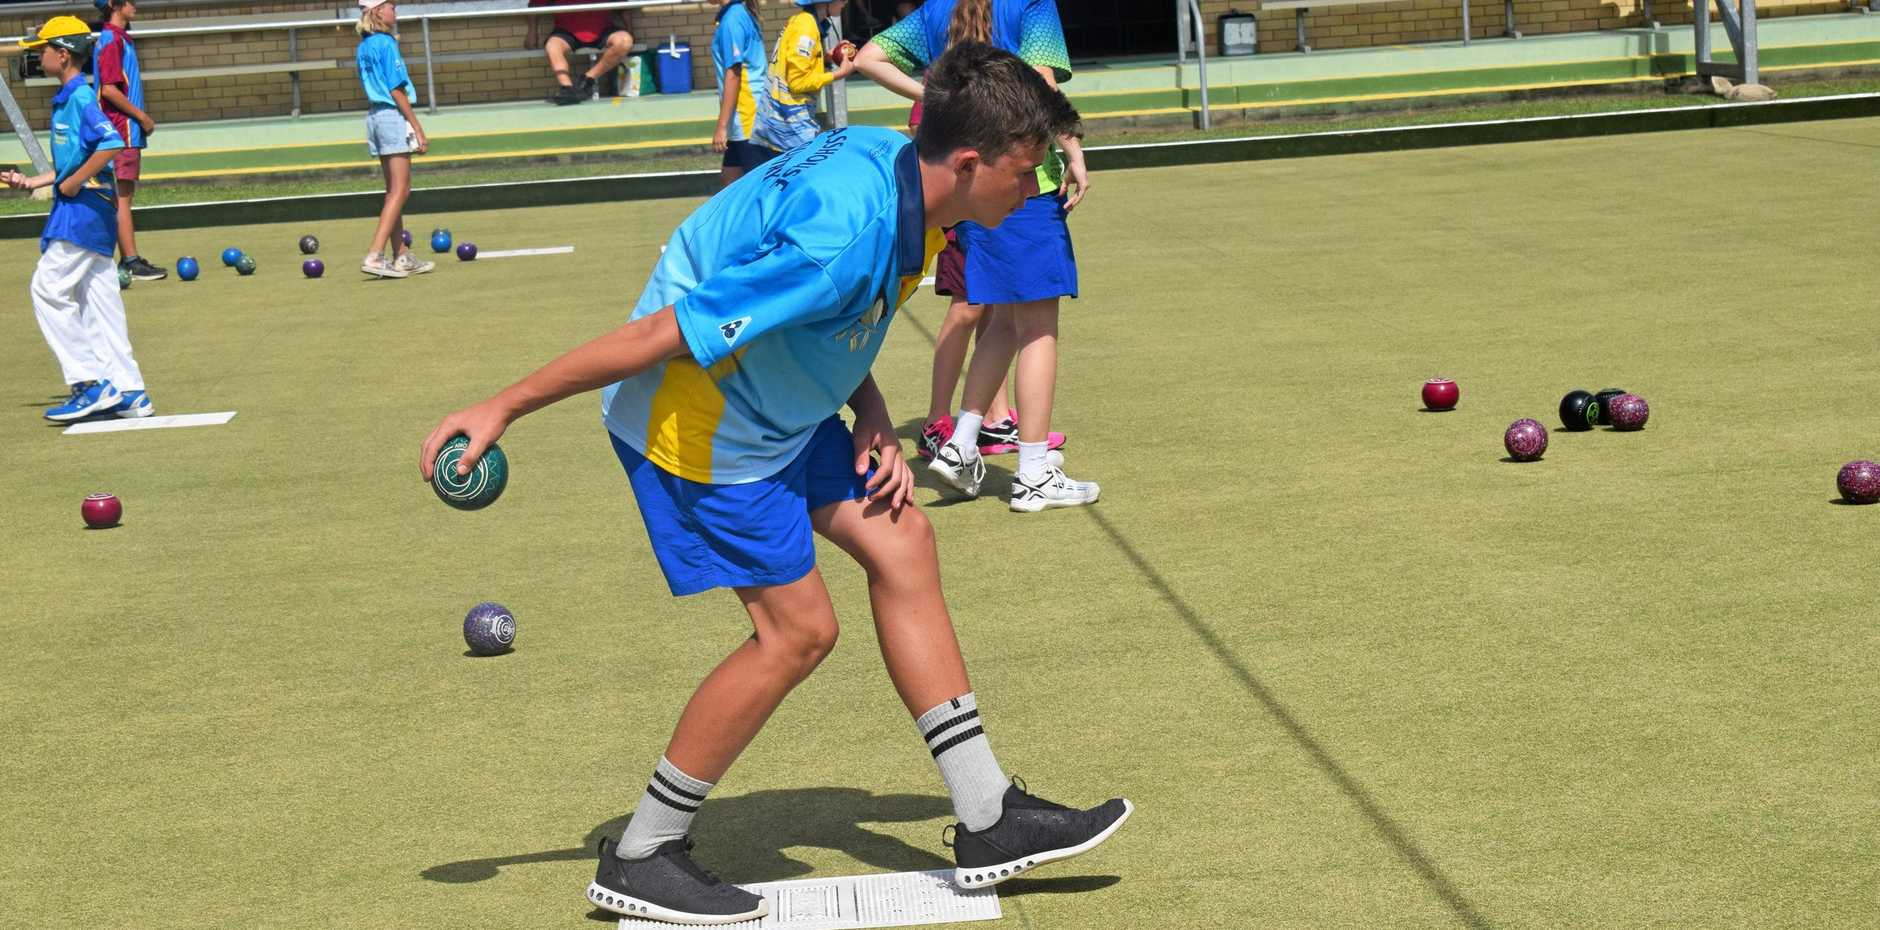 BOWLING BRILLIANCE: Albert Park Bowls Club junior Kynan Clark competing on Sunday afternoon.